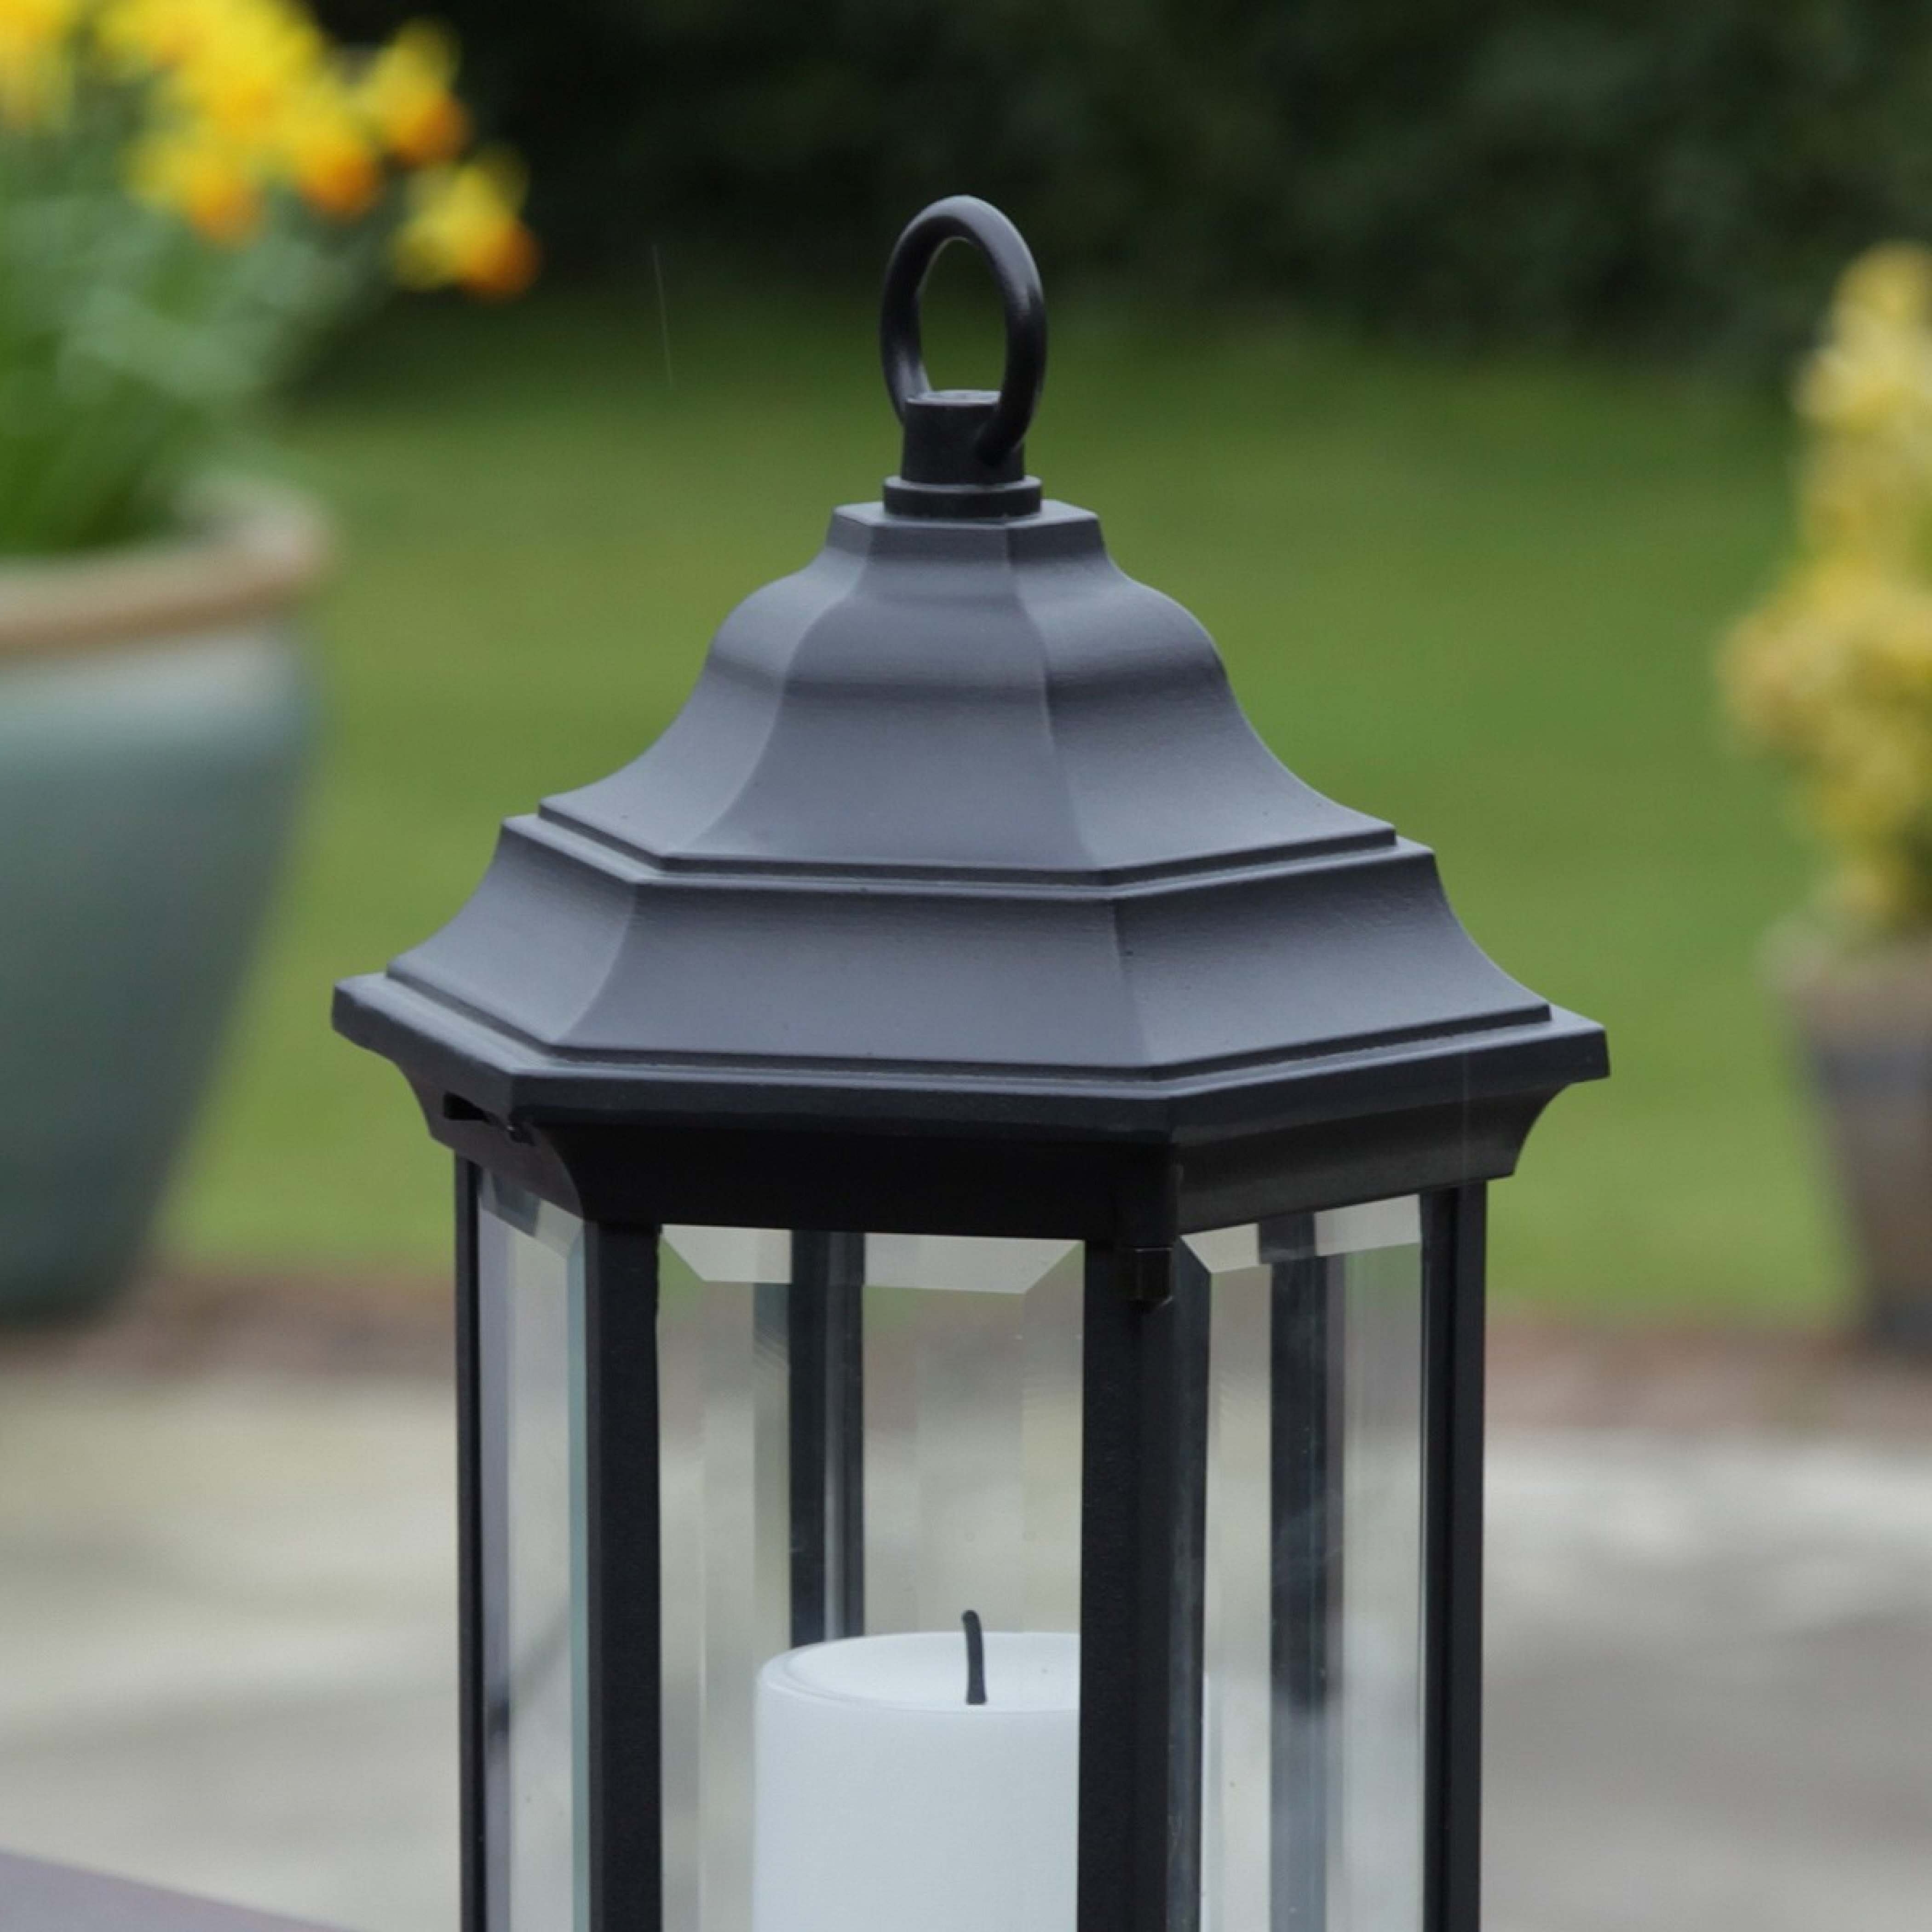 Most Popular Outdoor Timer Lanterns Intended For Battery Operated Outdoor Lanterns With Timer – Outdoor Ideas (View 14 of 20)